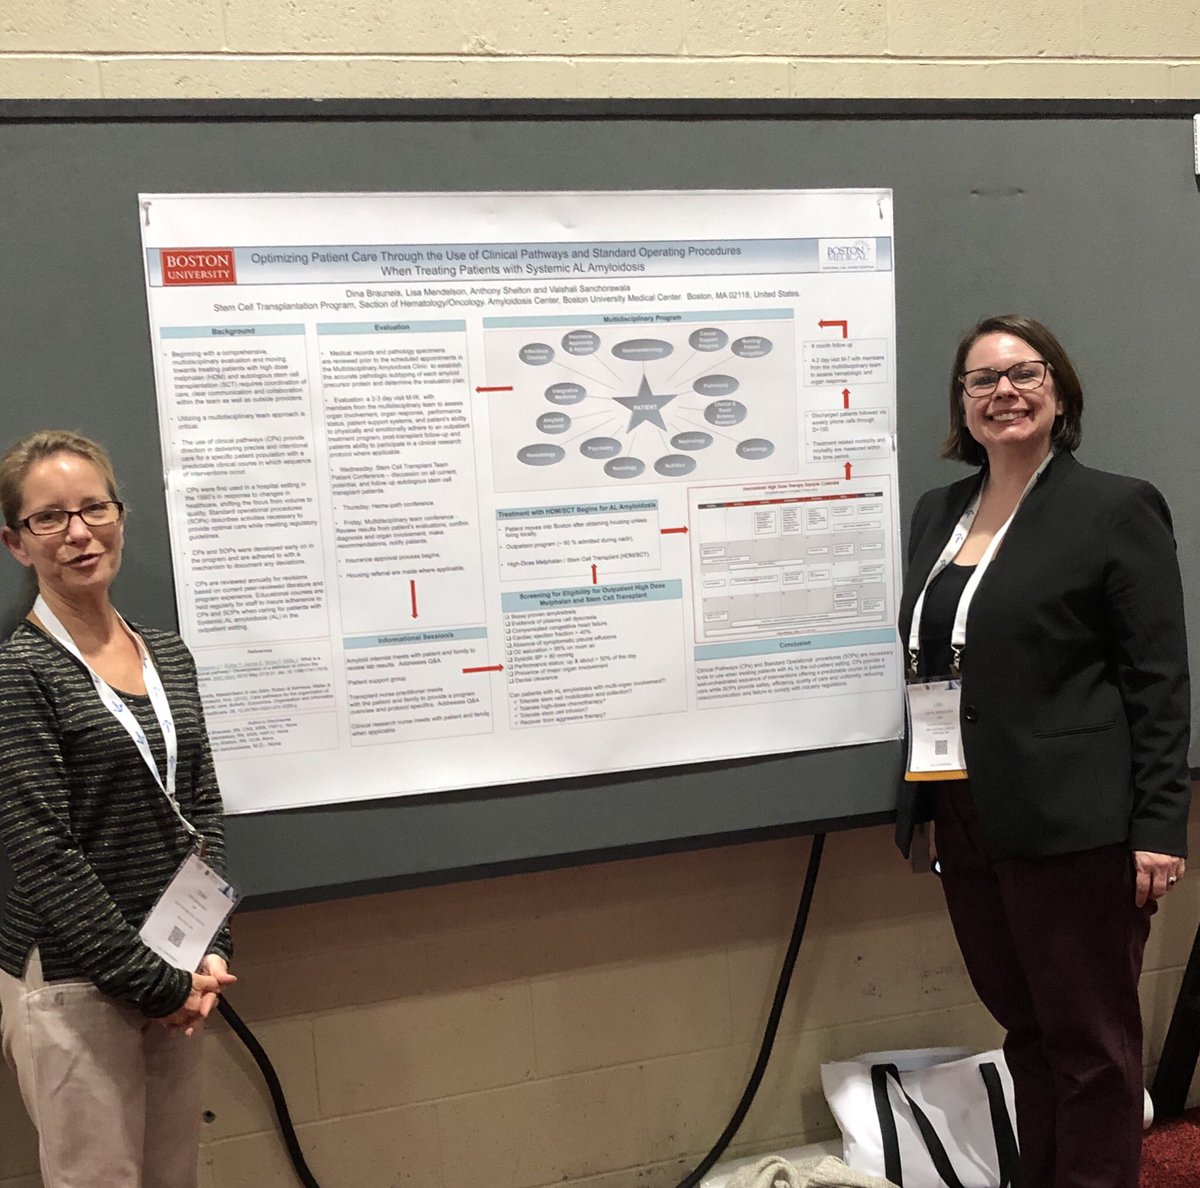 Poster presentation about SOPs And clinical pathways on patients with systemic AL Amyloidosis @BU_Amyloidosis @lis589 @DinaBrauneis